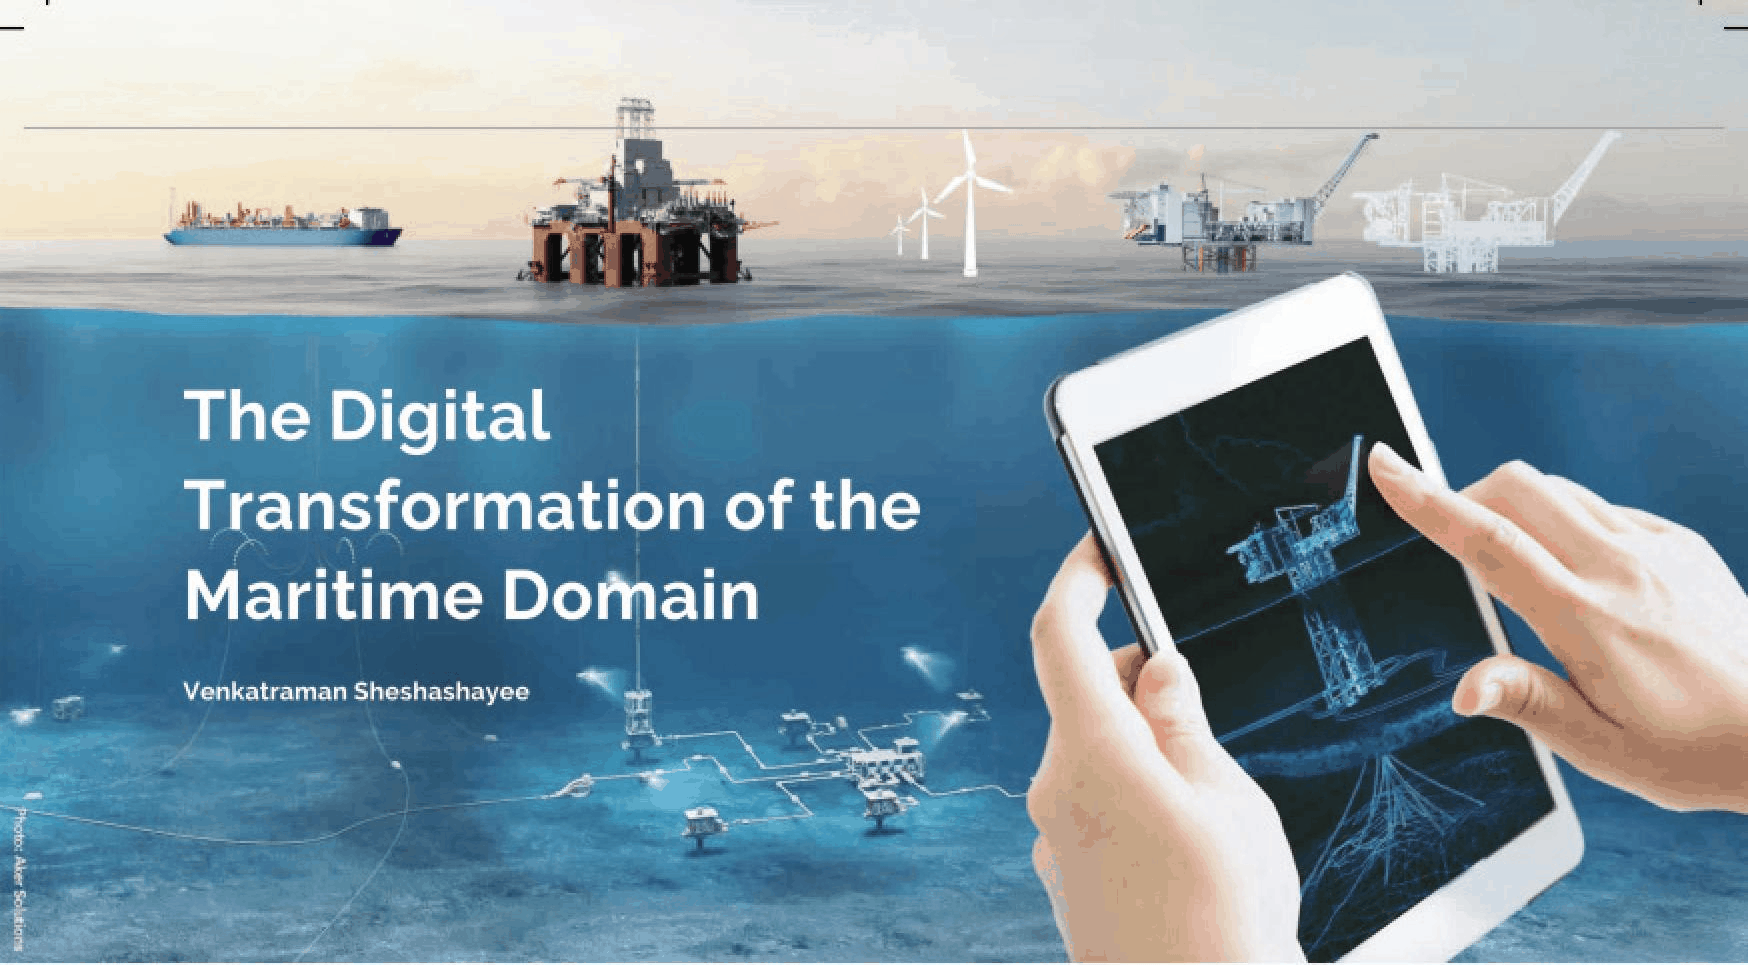 The digital transformation of the maritime domain